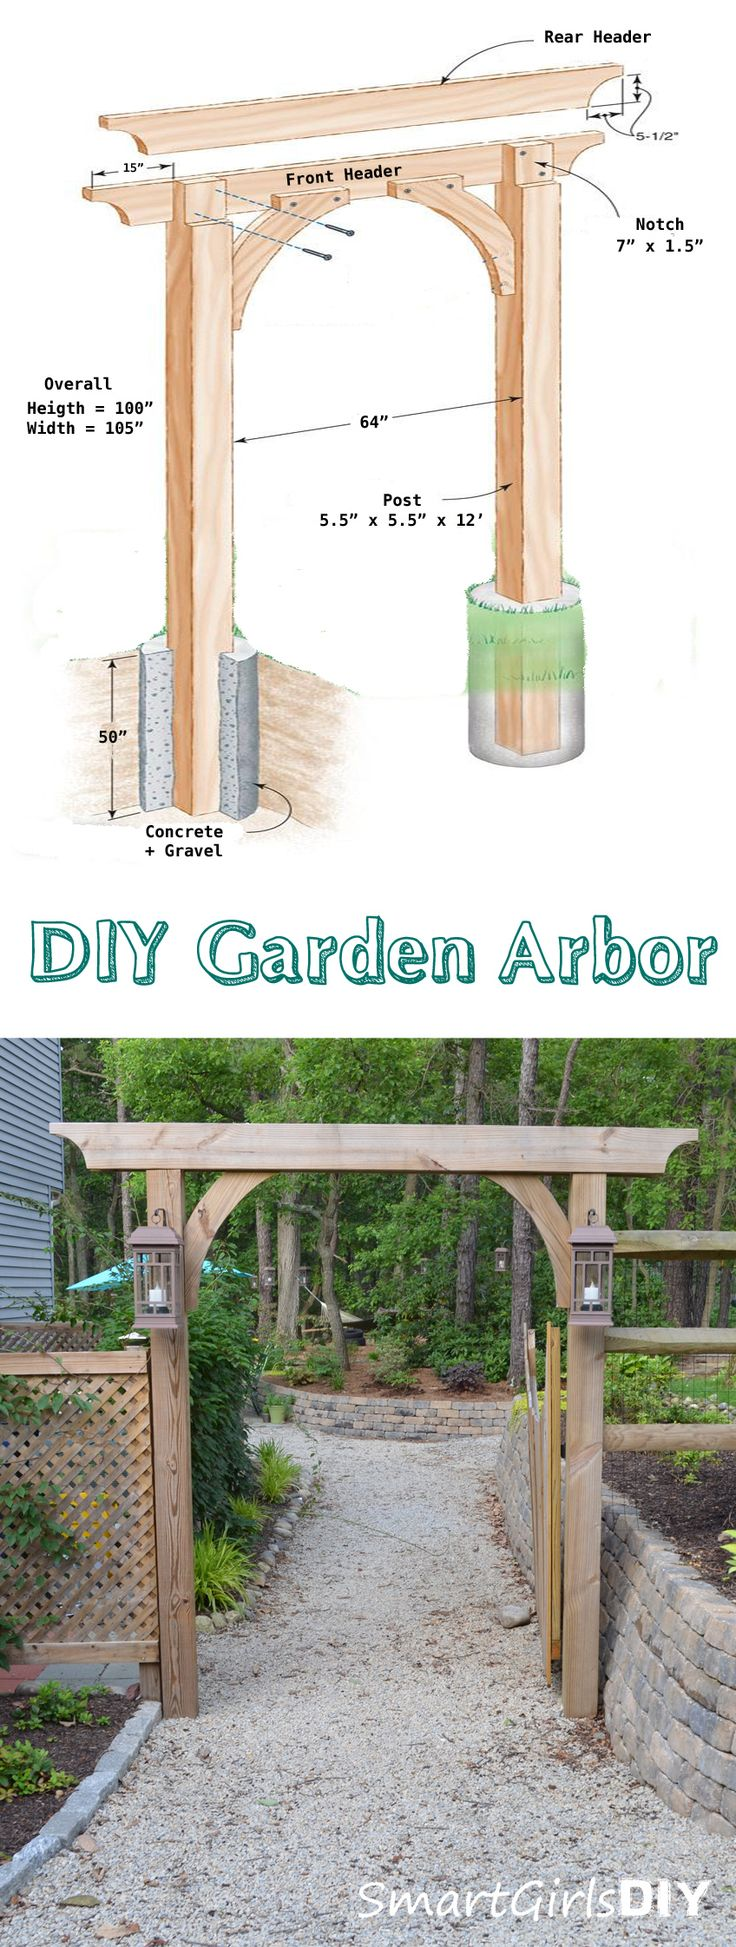 Family-Handymand-Inspired-Garden-Arbor-Built-by-Smart-Girls-DIY.jpg (848×2244)